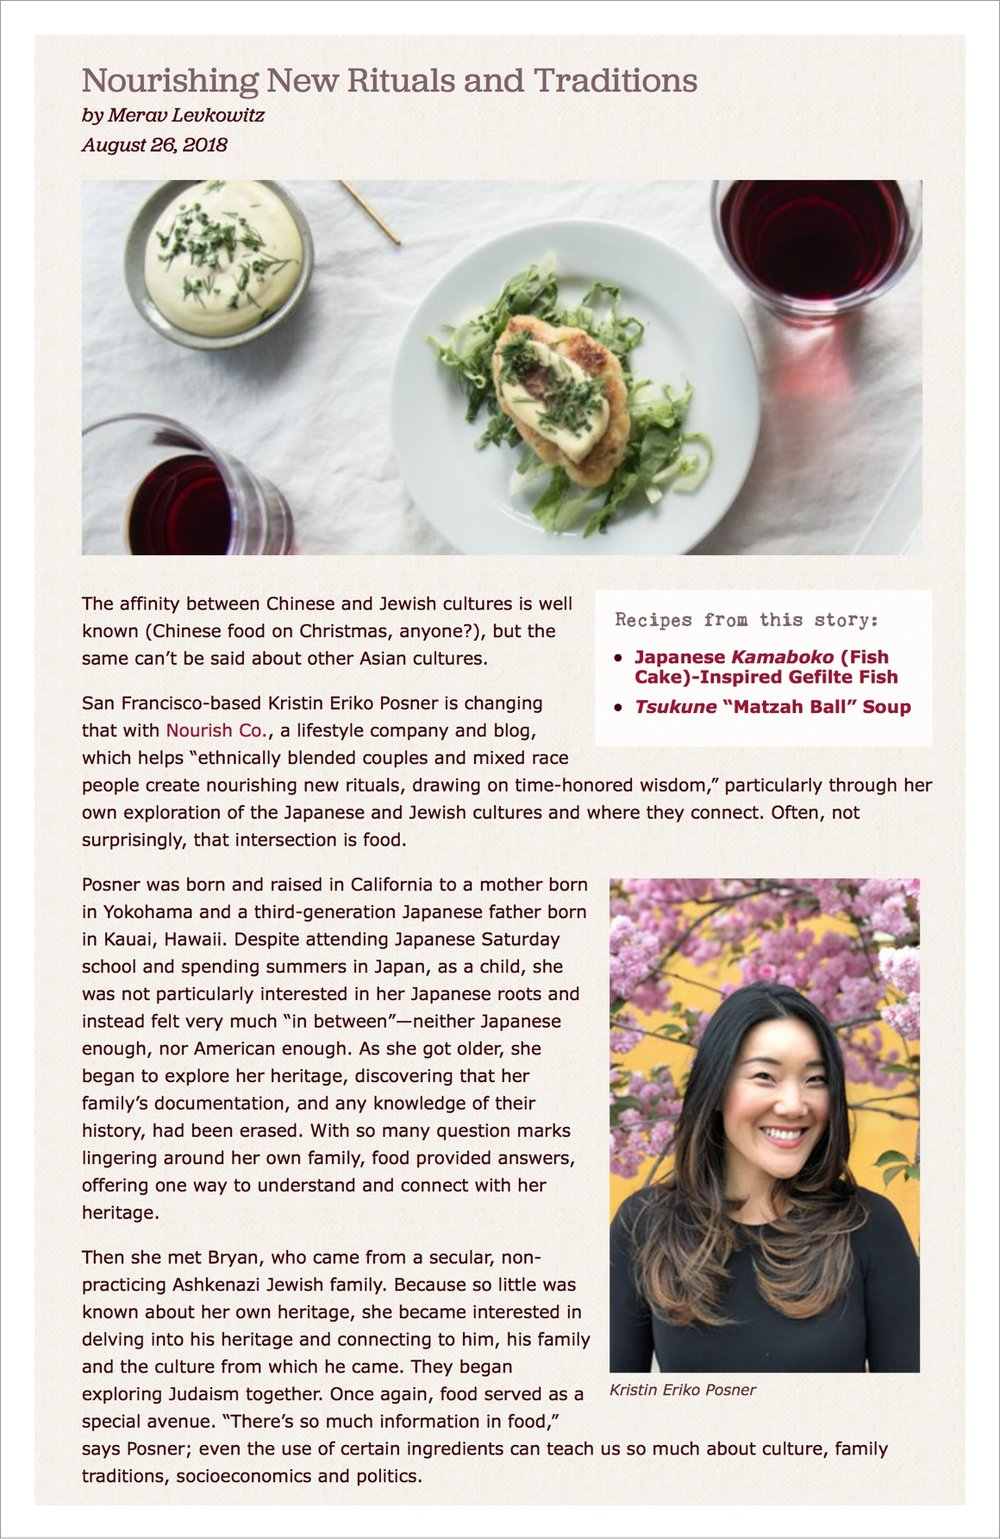 """Dishes like the Kamaboko Gefilte Fish and Black Sesame Hamantashen... are all examples of Posner's own 'cultural innovation,' which she ultimately hopes will inspire others... Sounds like a recipe for success to us."